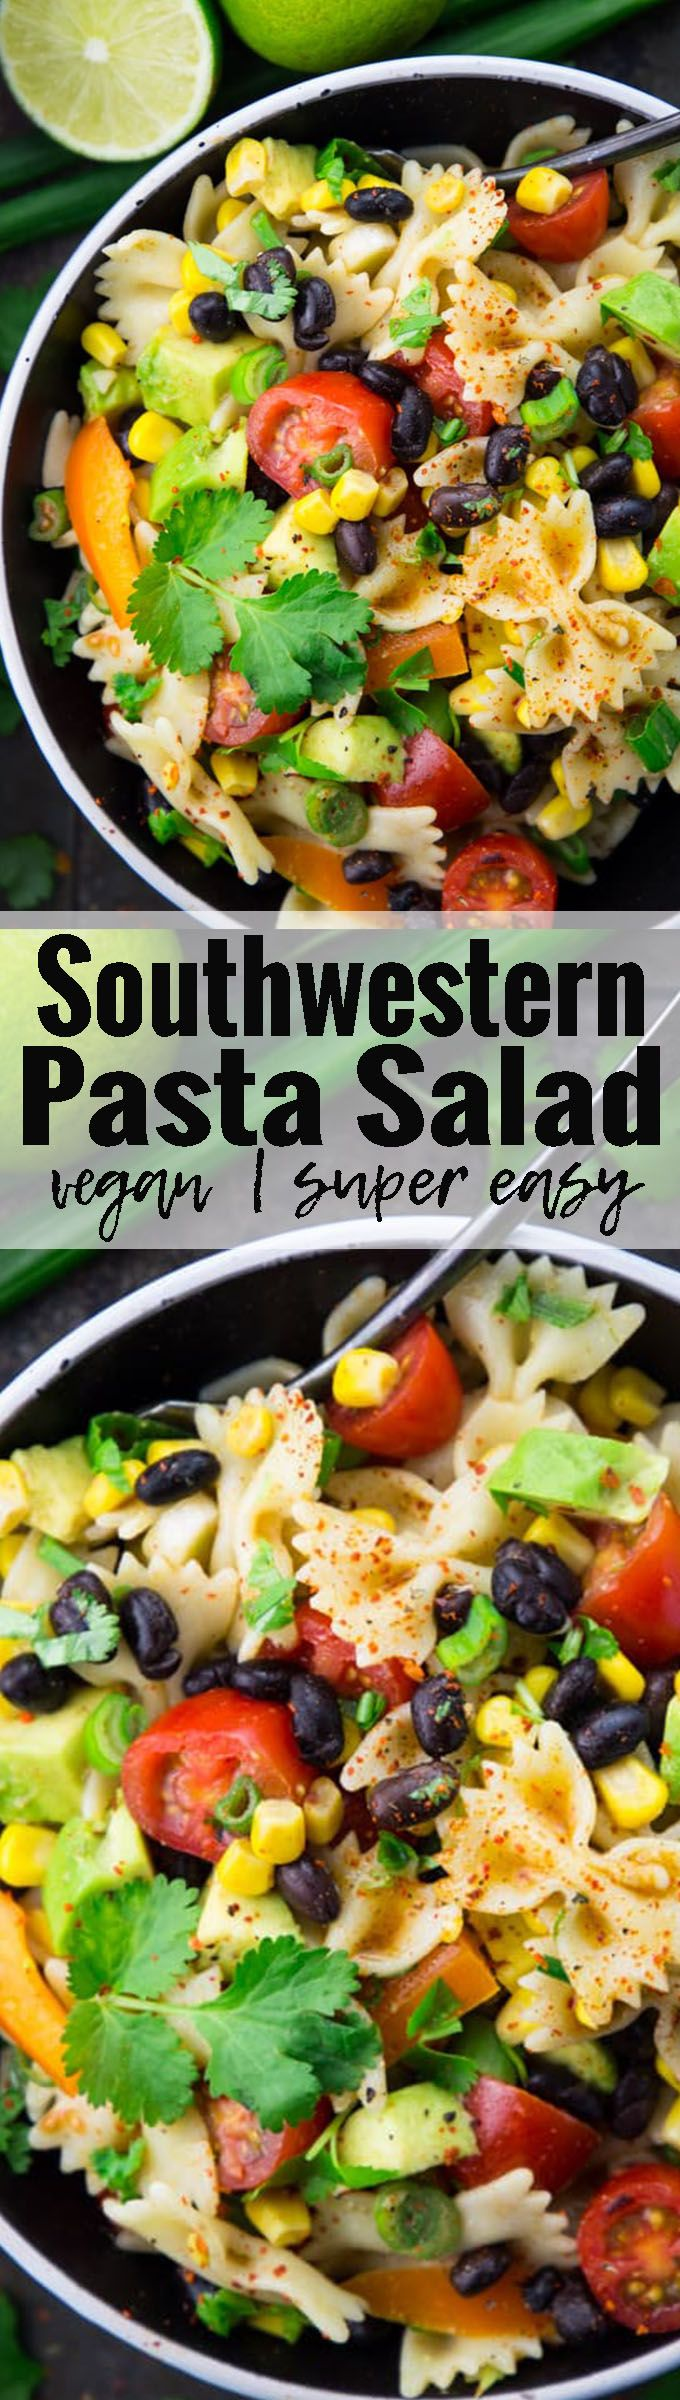 This Southwestern pasta salad with avocado, black beans, and lime dressing is my all-time favorite pasta salad! It's so delicious, vegan, and really easy to make! Find more of my vegan recipes over at veganheaven.org <3